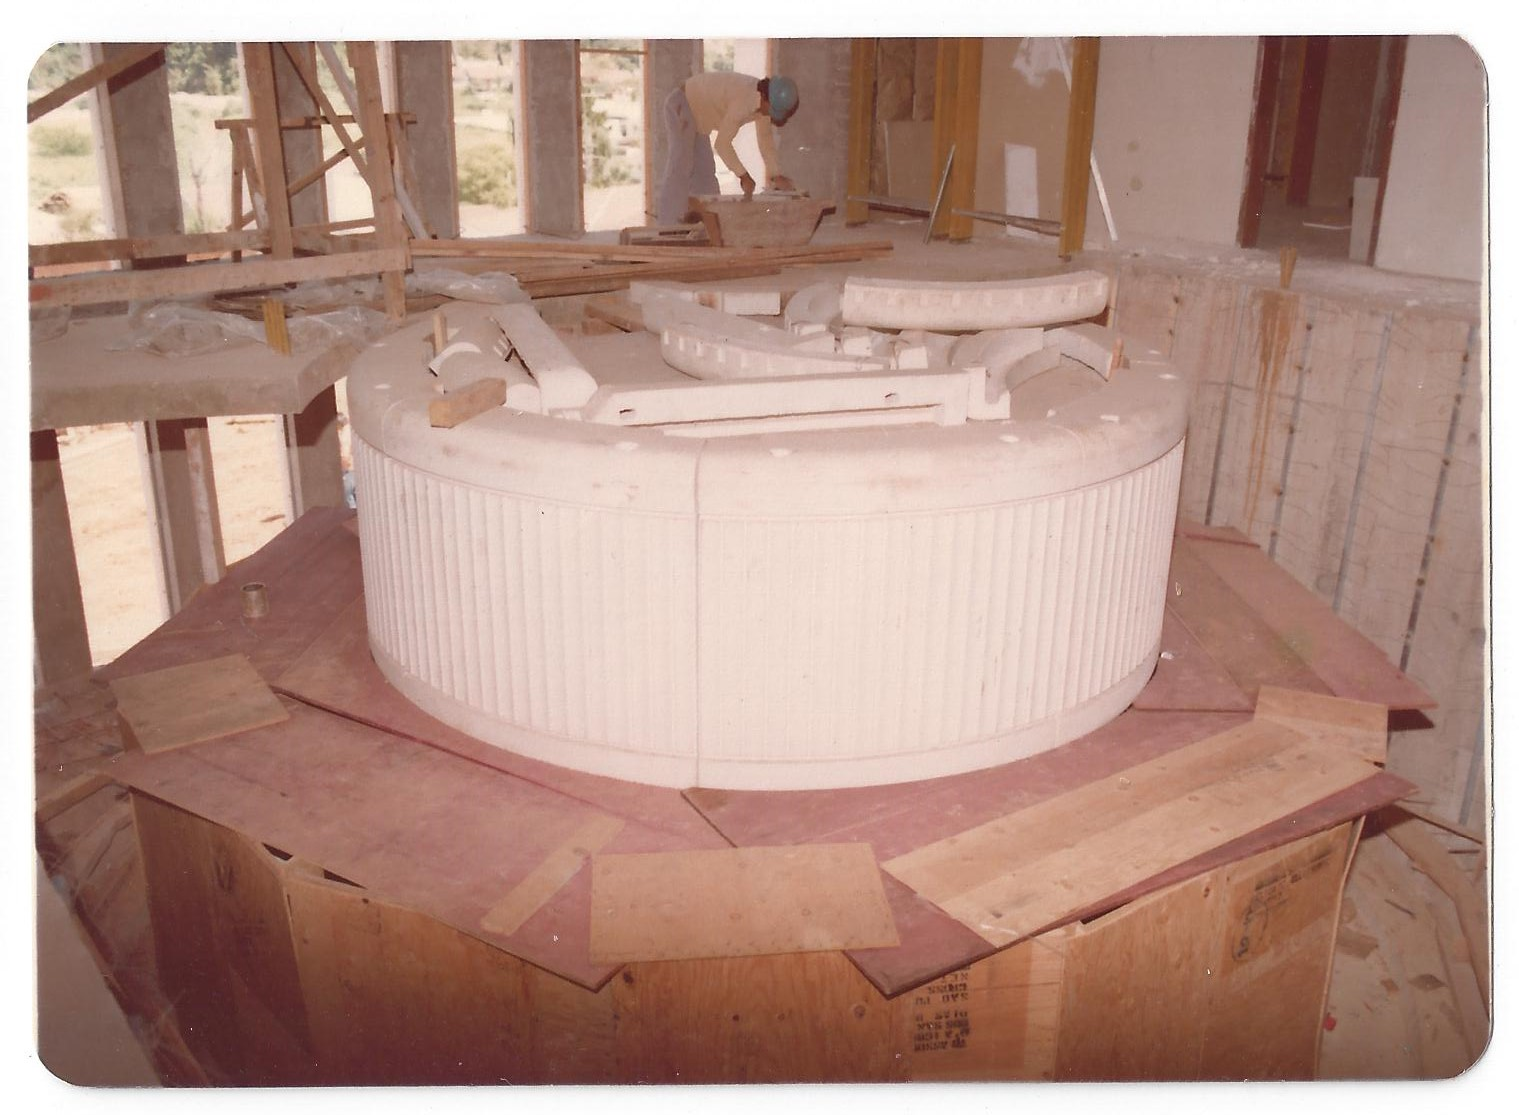 A photo showing the baptismal font in the LDS Church's São Paulo Temple during construction in São Paulo, Brazil between 1976 and 1978.